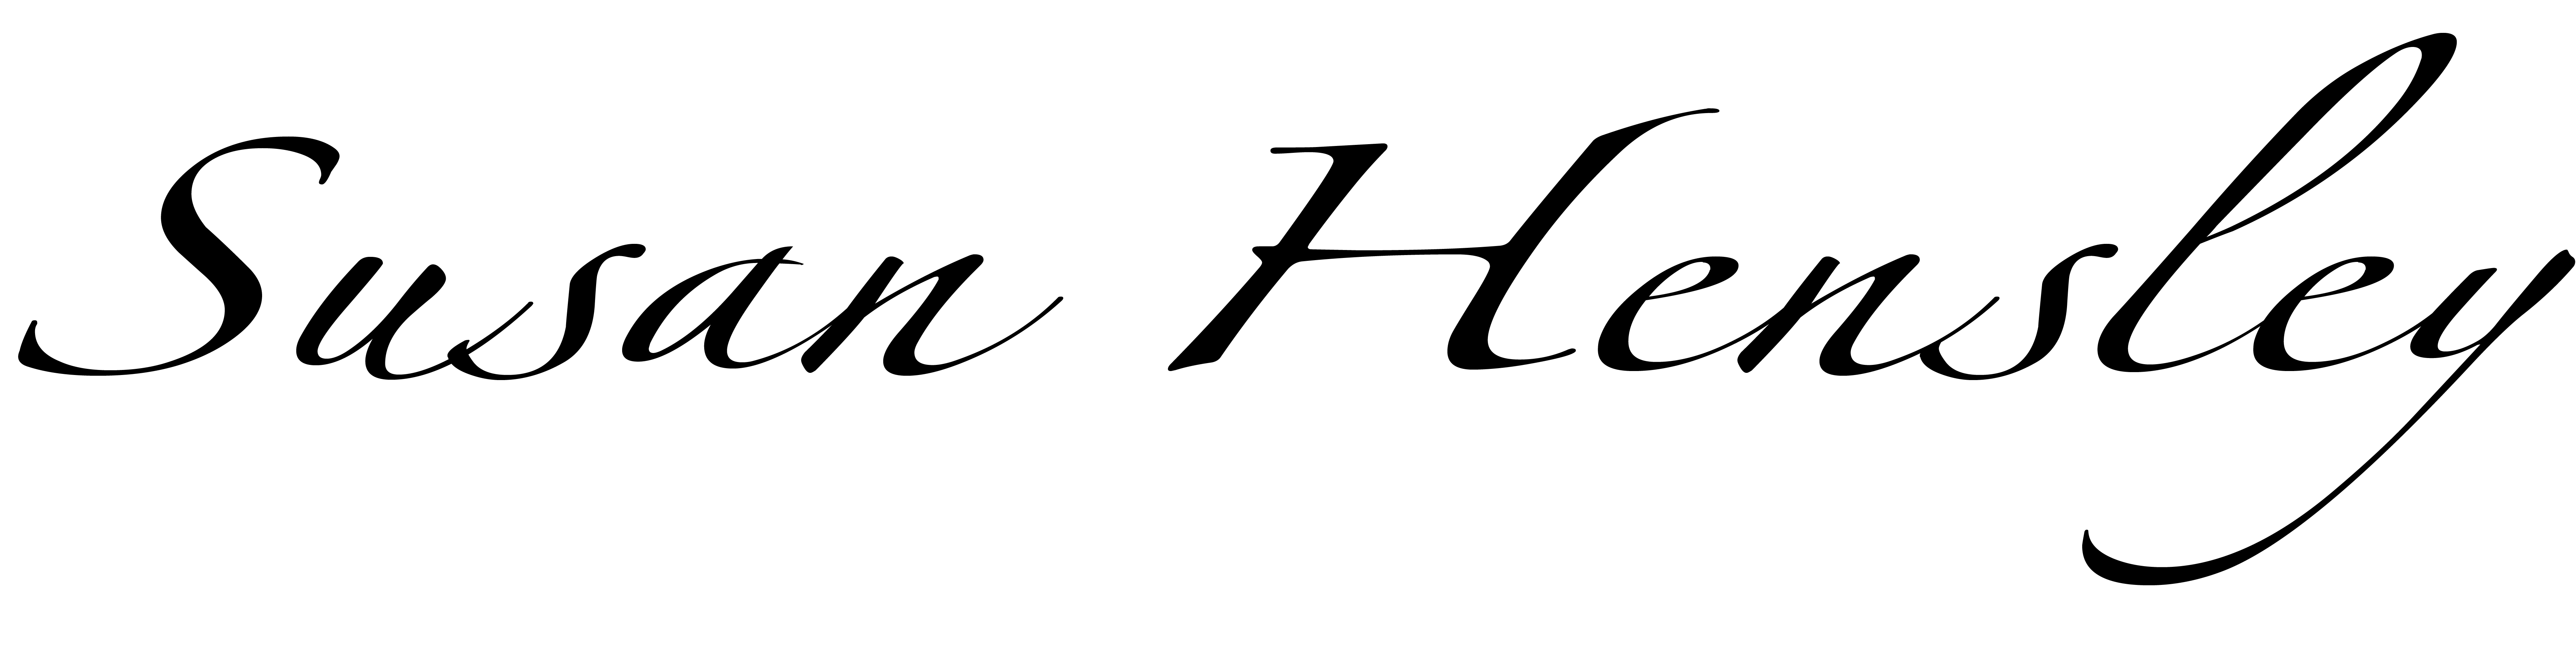 Susan Hensley Signature